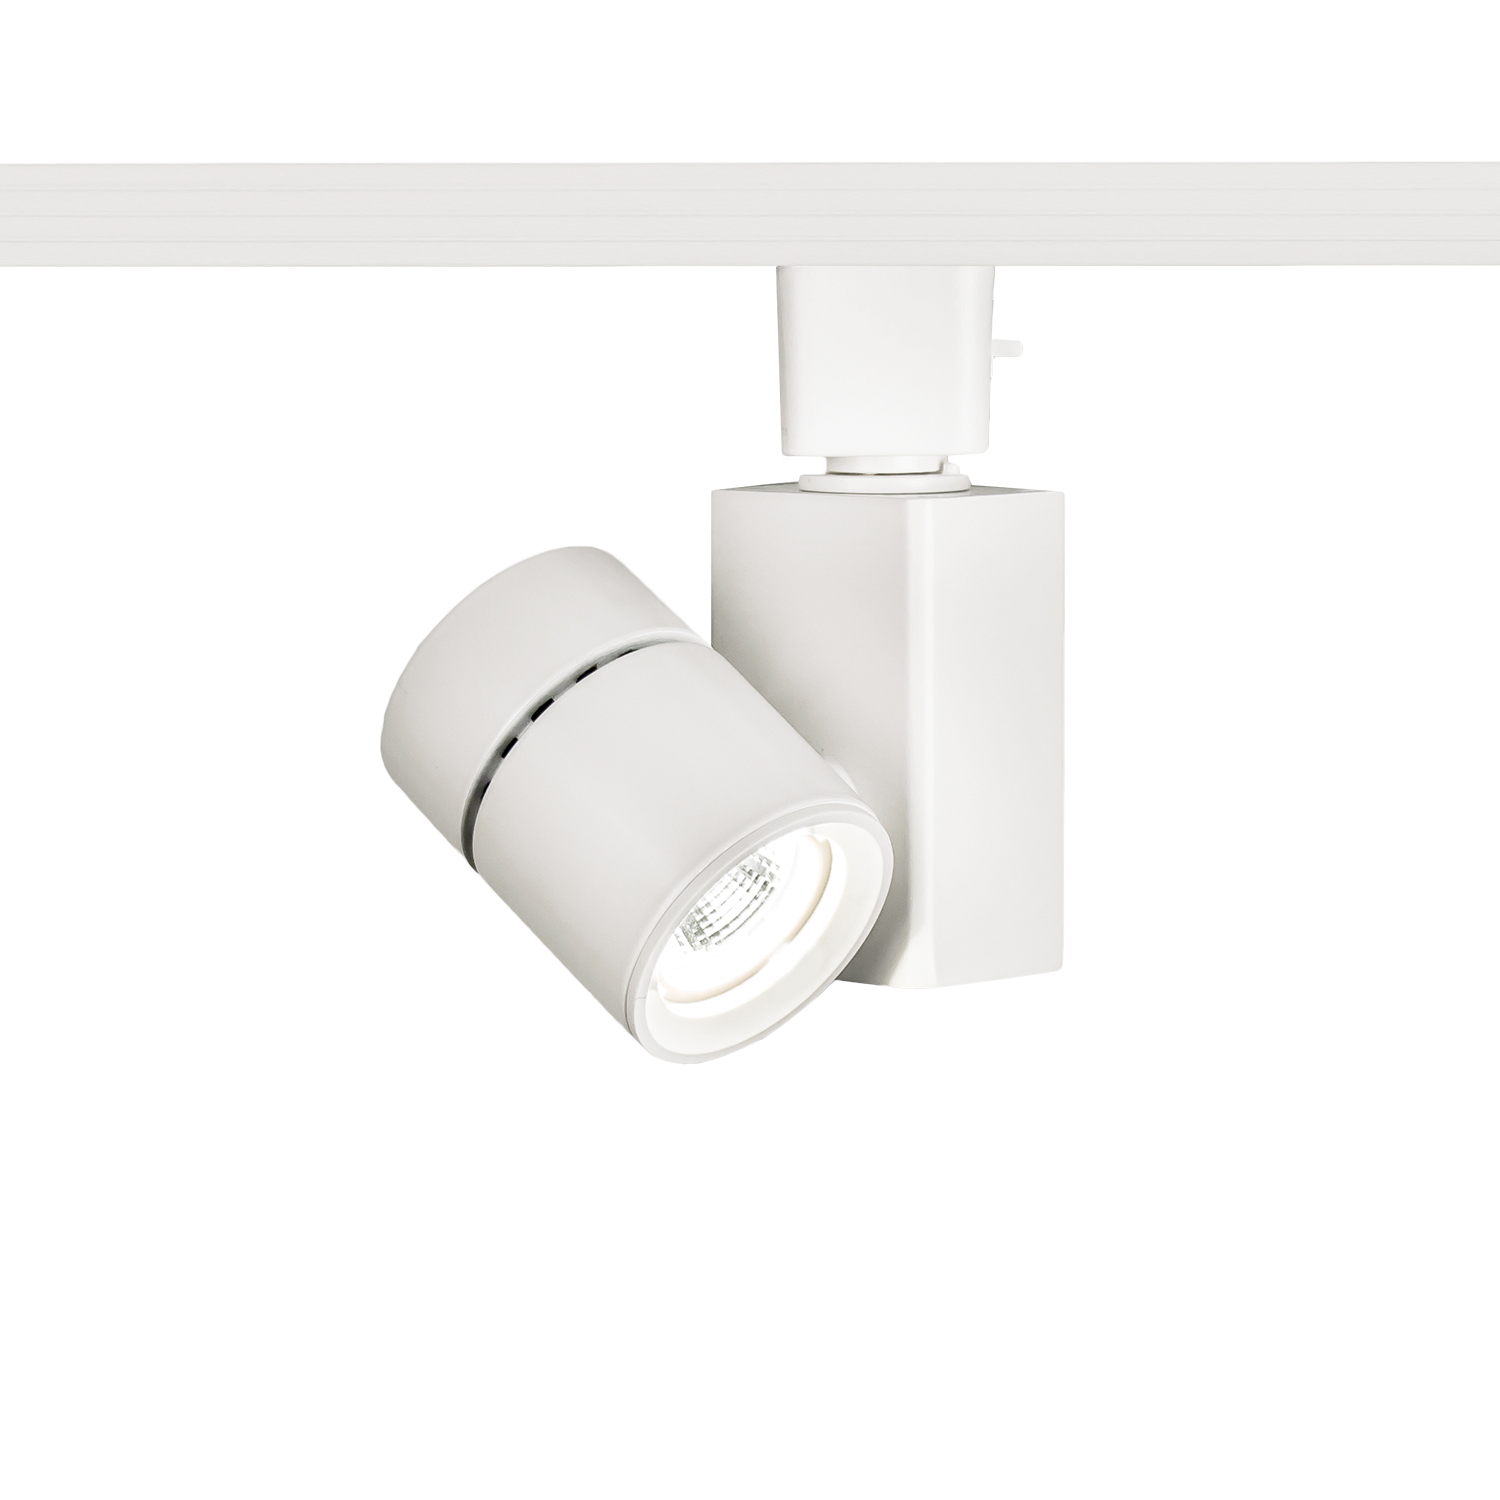 led 3inchwall washer square trim from the tesla collection by wac lighting hr 3led t518n w cb